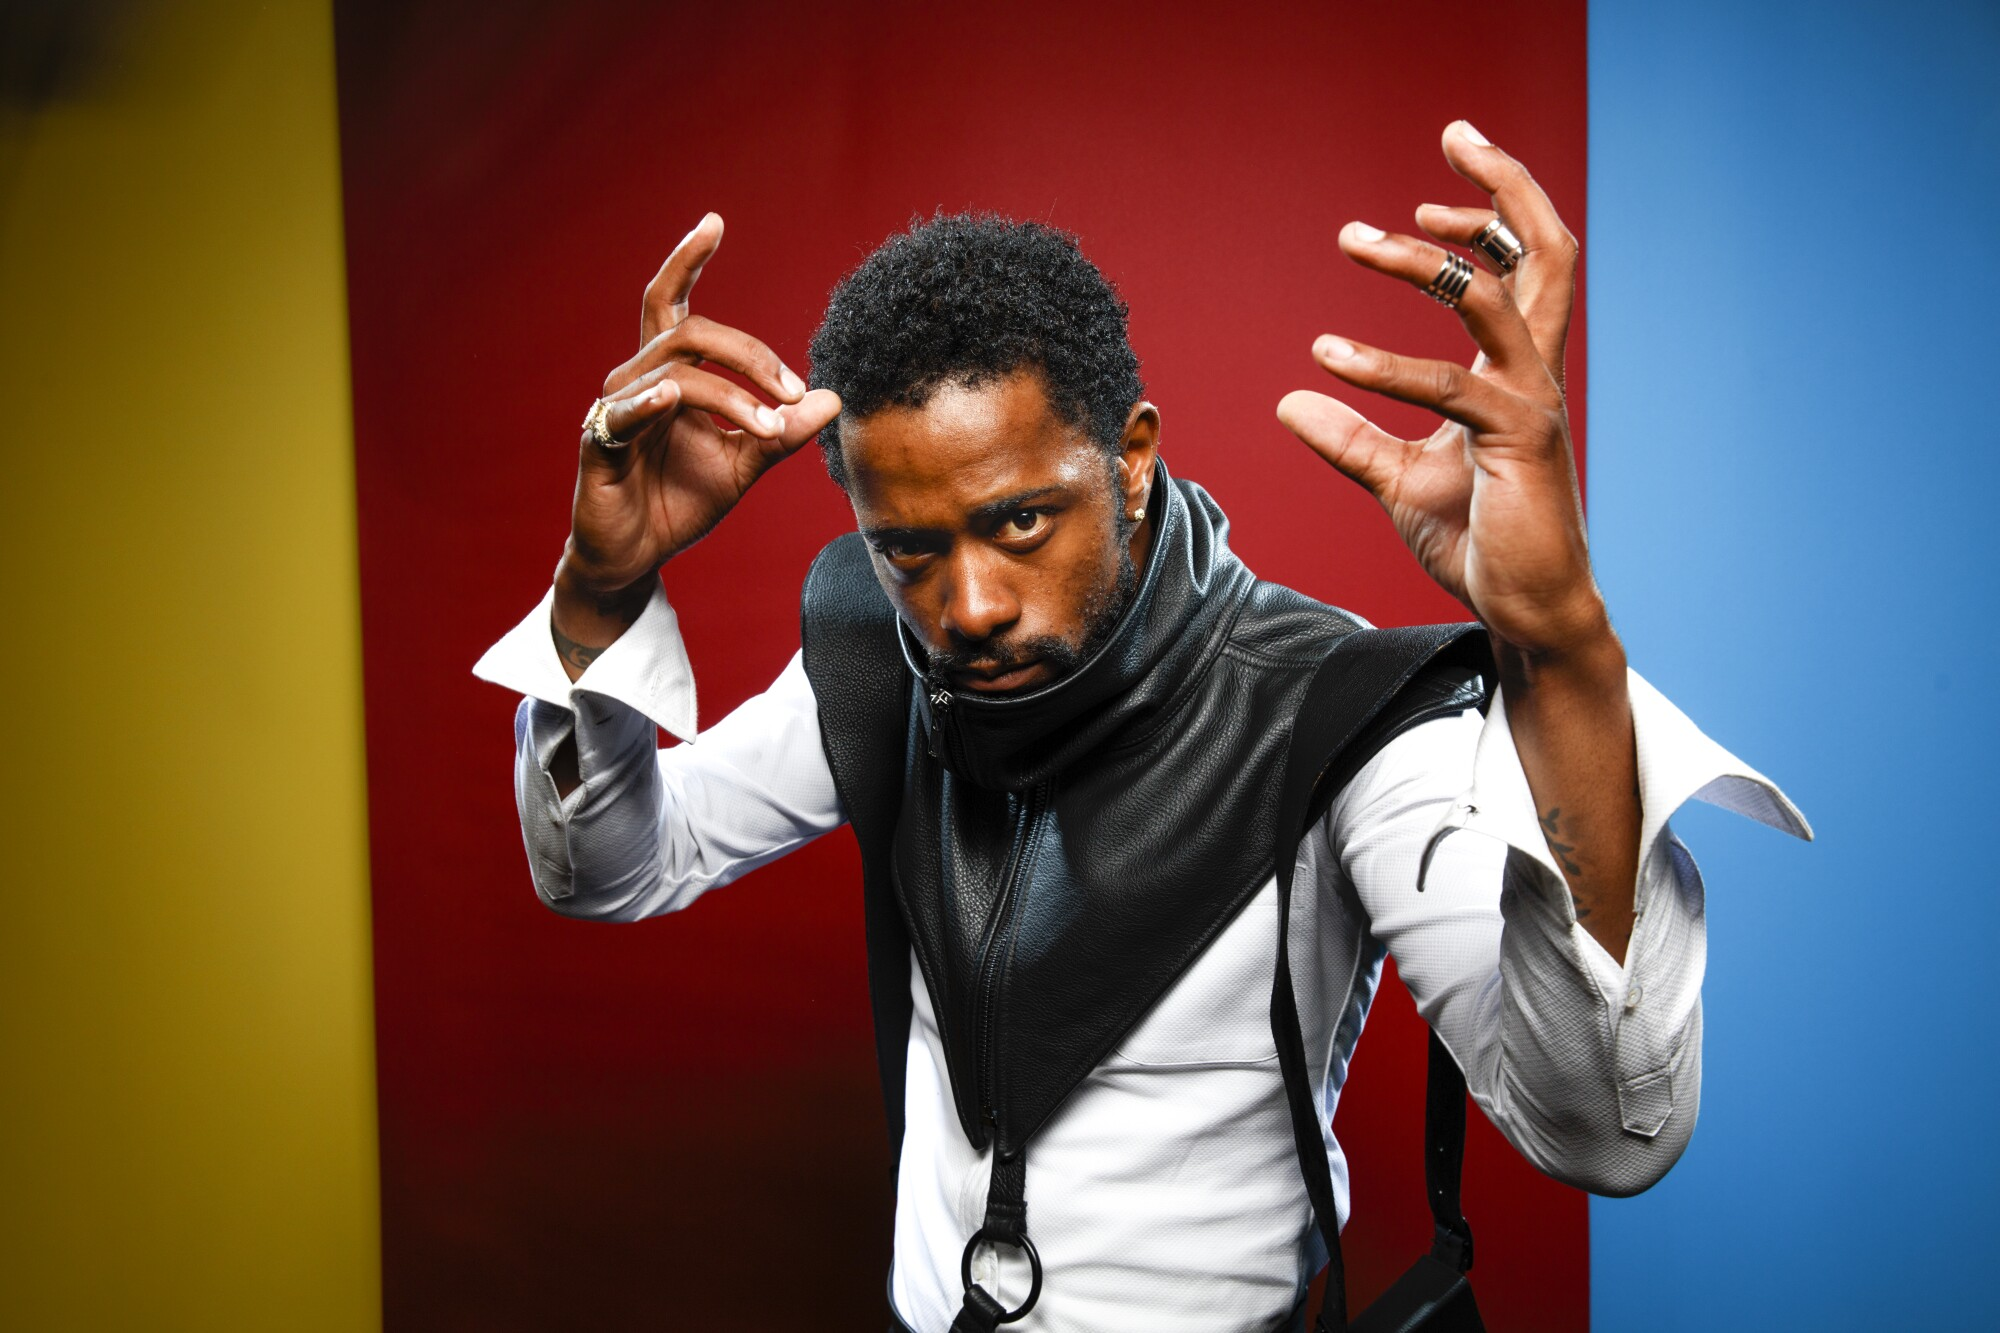 """Lakeith Stanfield, from the film """"Death Note,"""" photographed in San Diego at Comic-Con 2017."""